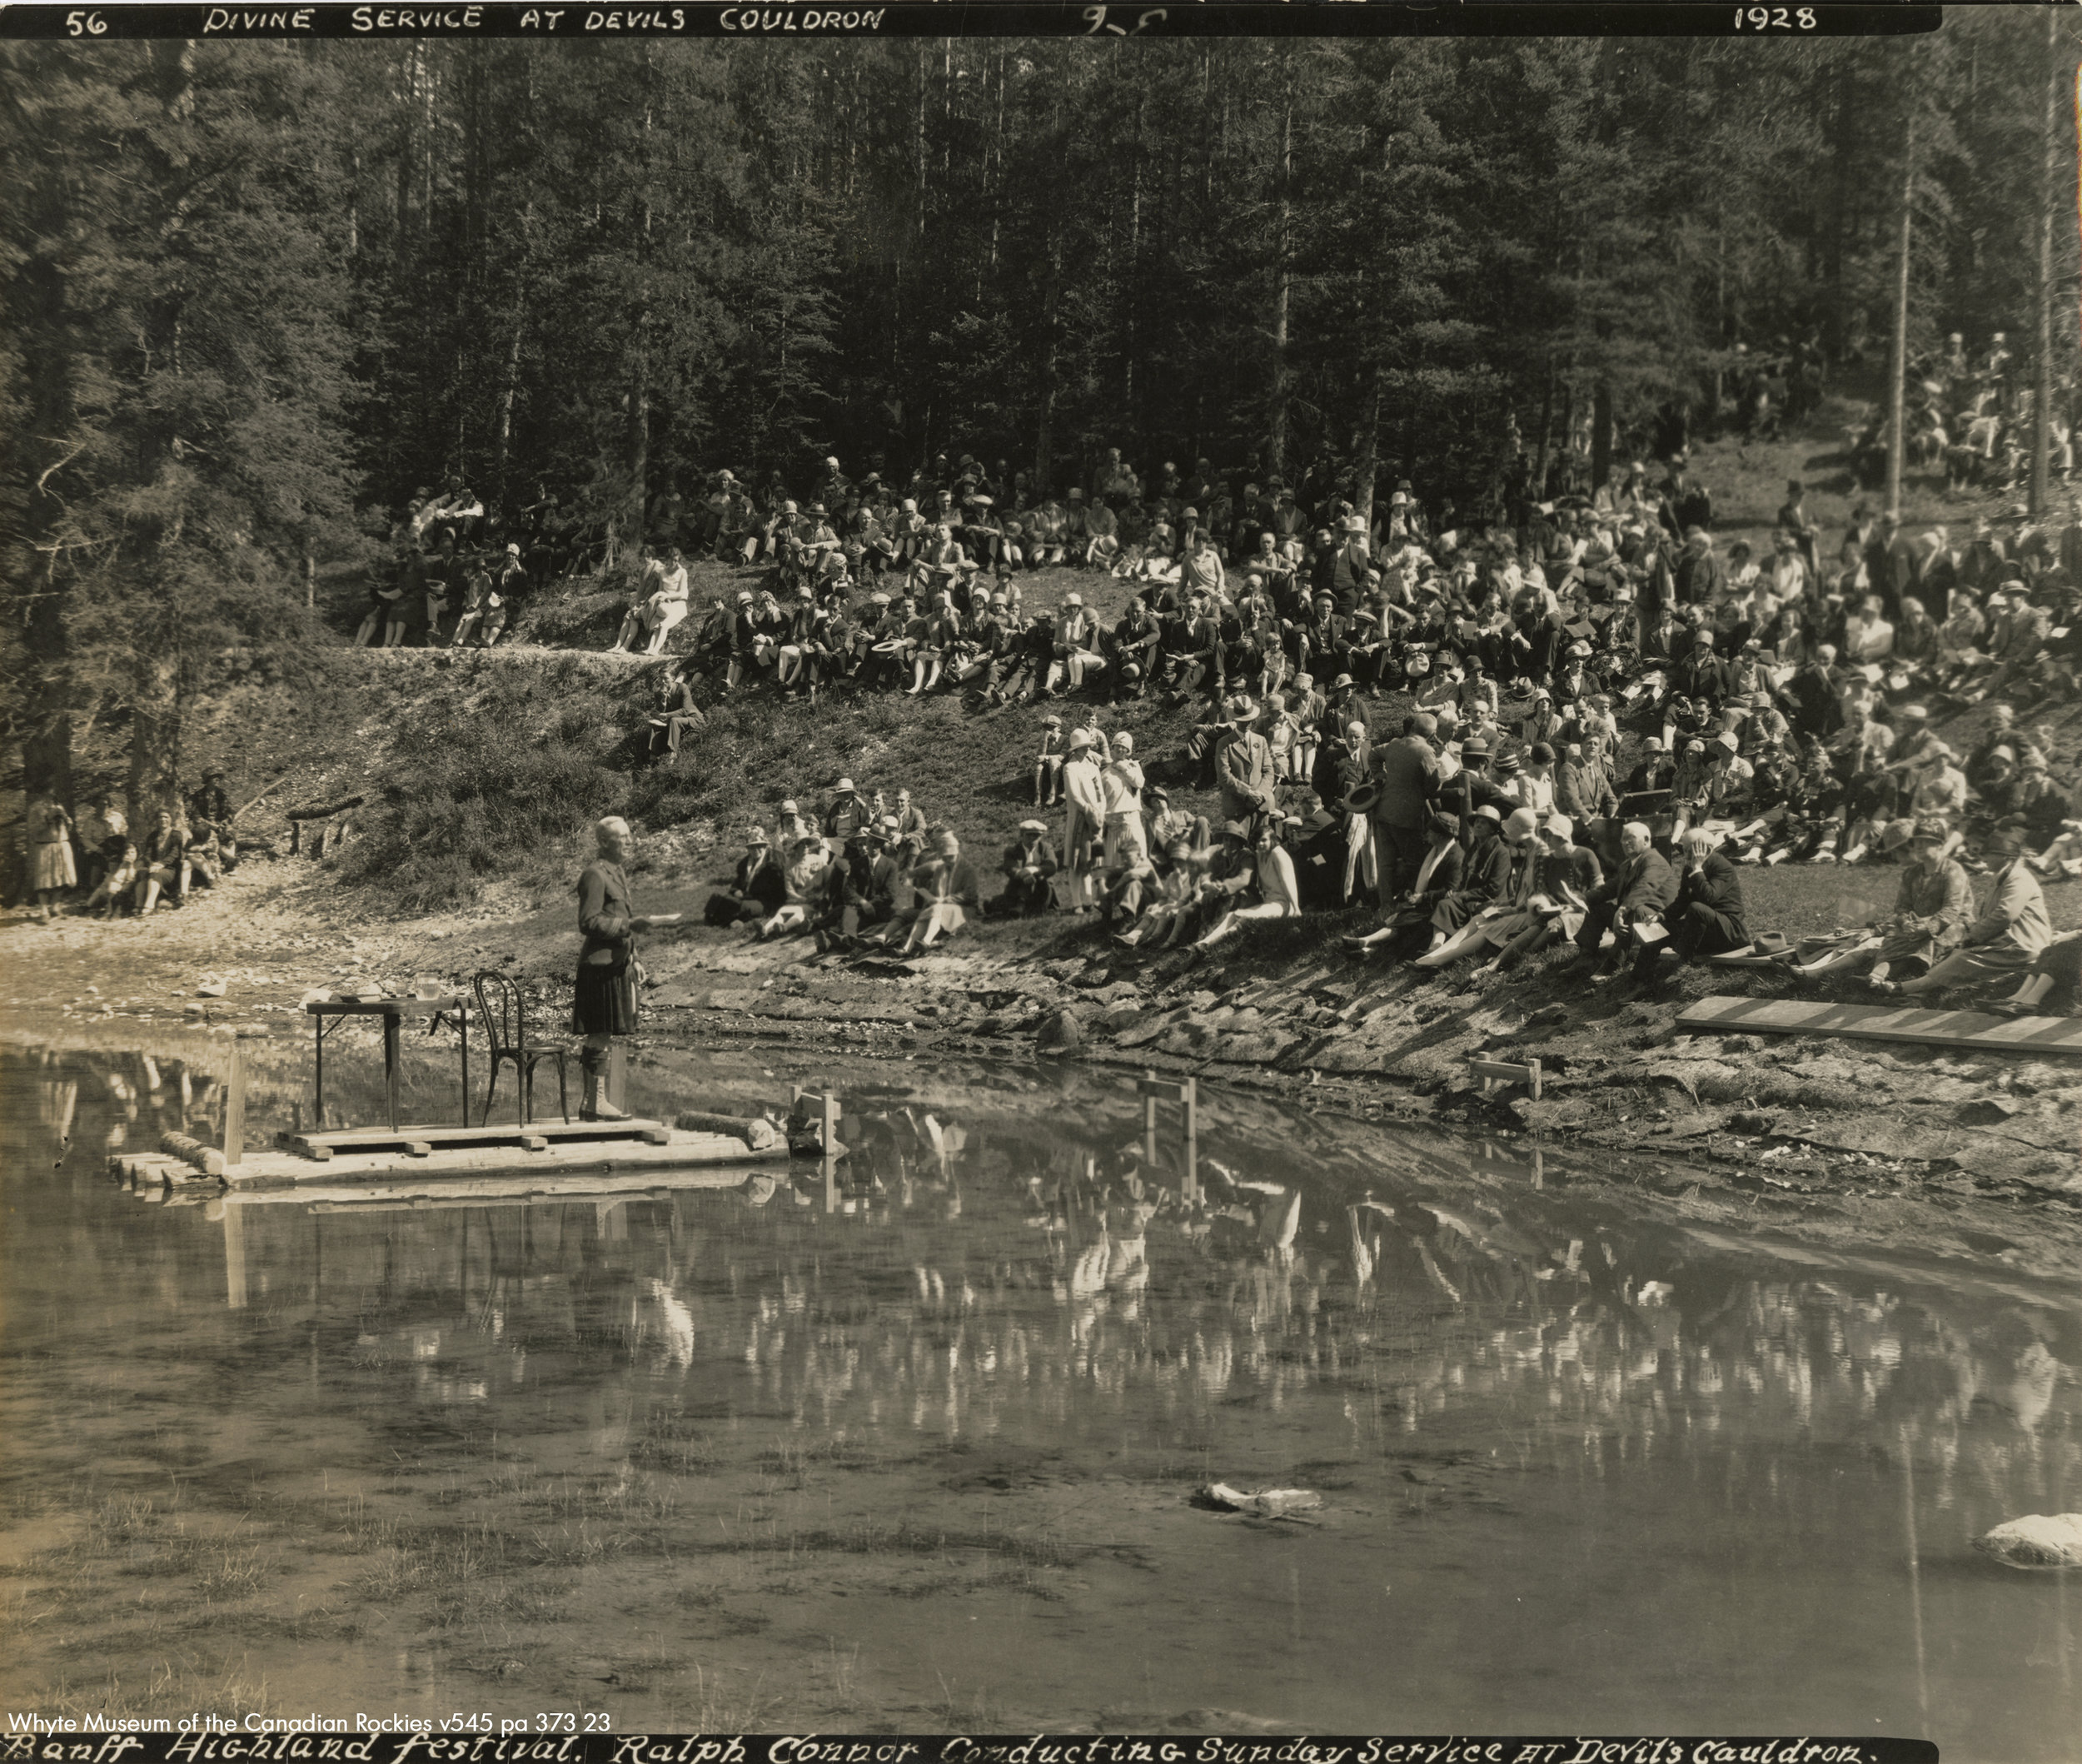 Reverend Ralph Connor giving his sermon September of 1928 from a floating raft in the Devil's Cauldron. No bunkers present.